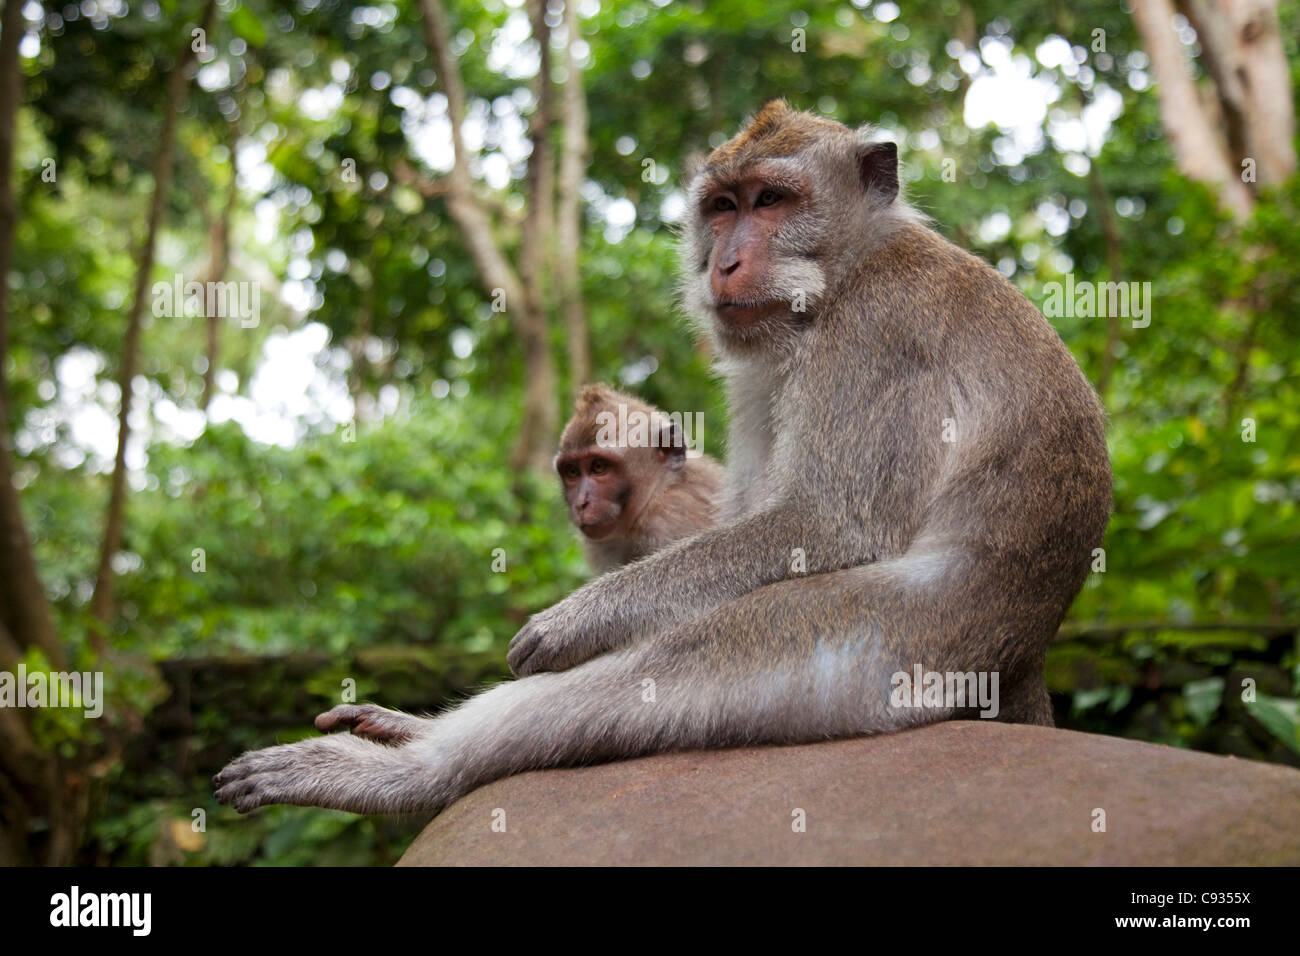 Bali, Ubud. Macaques sitting patiently on a wall in Ubud's Sacred Monkey Forest. - Stock Image